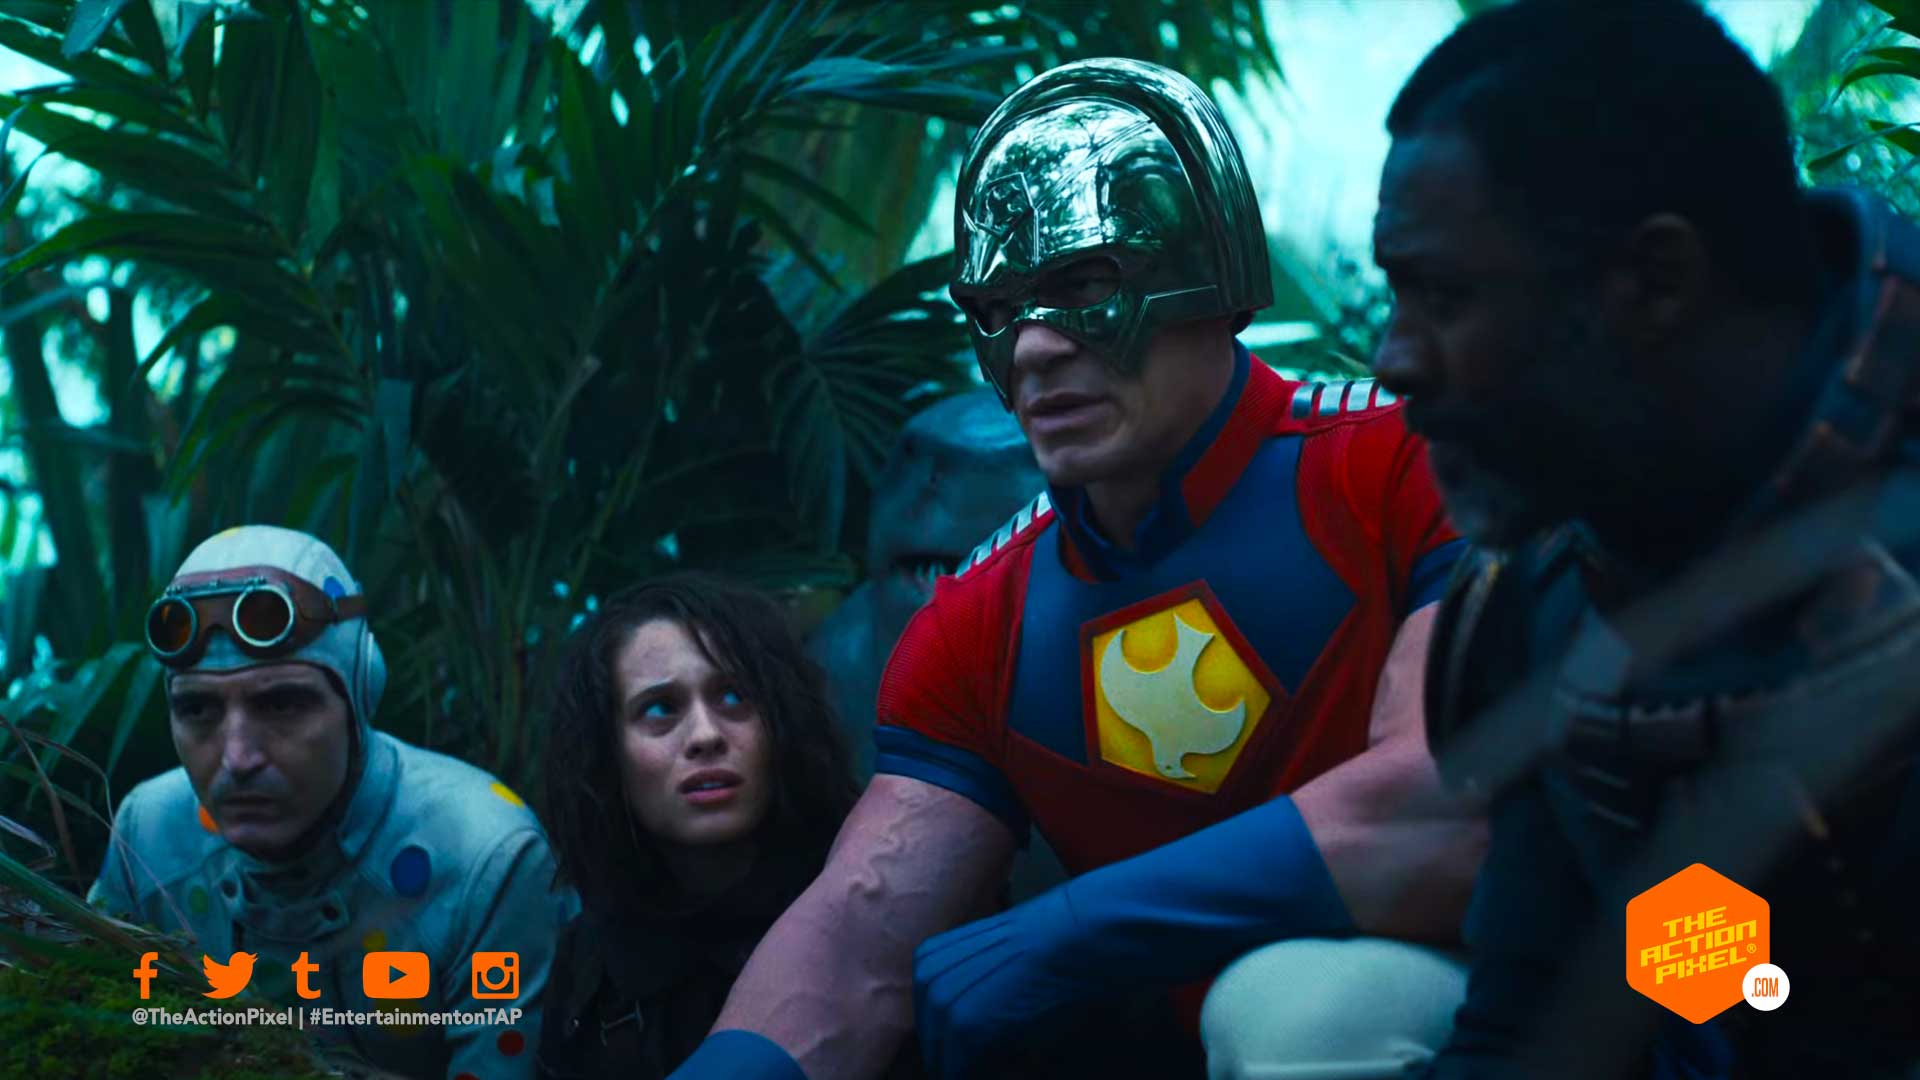 james gunn,the suicide squad, featured, the action pixel, entertainment on tap,rebellion trailer, suicide squad rebellion, the suicide squad, the suicide squad rebellion trailer, featured, peacemaker, bloodshot,